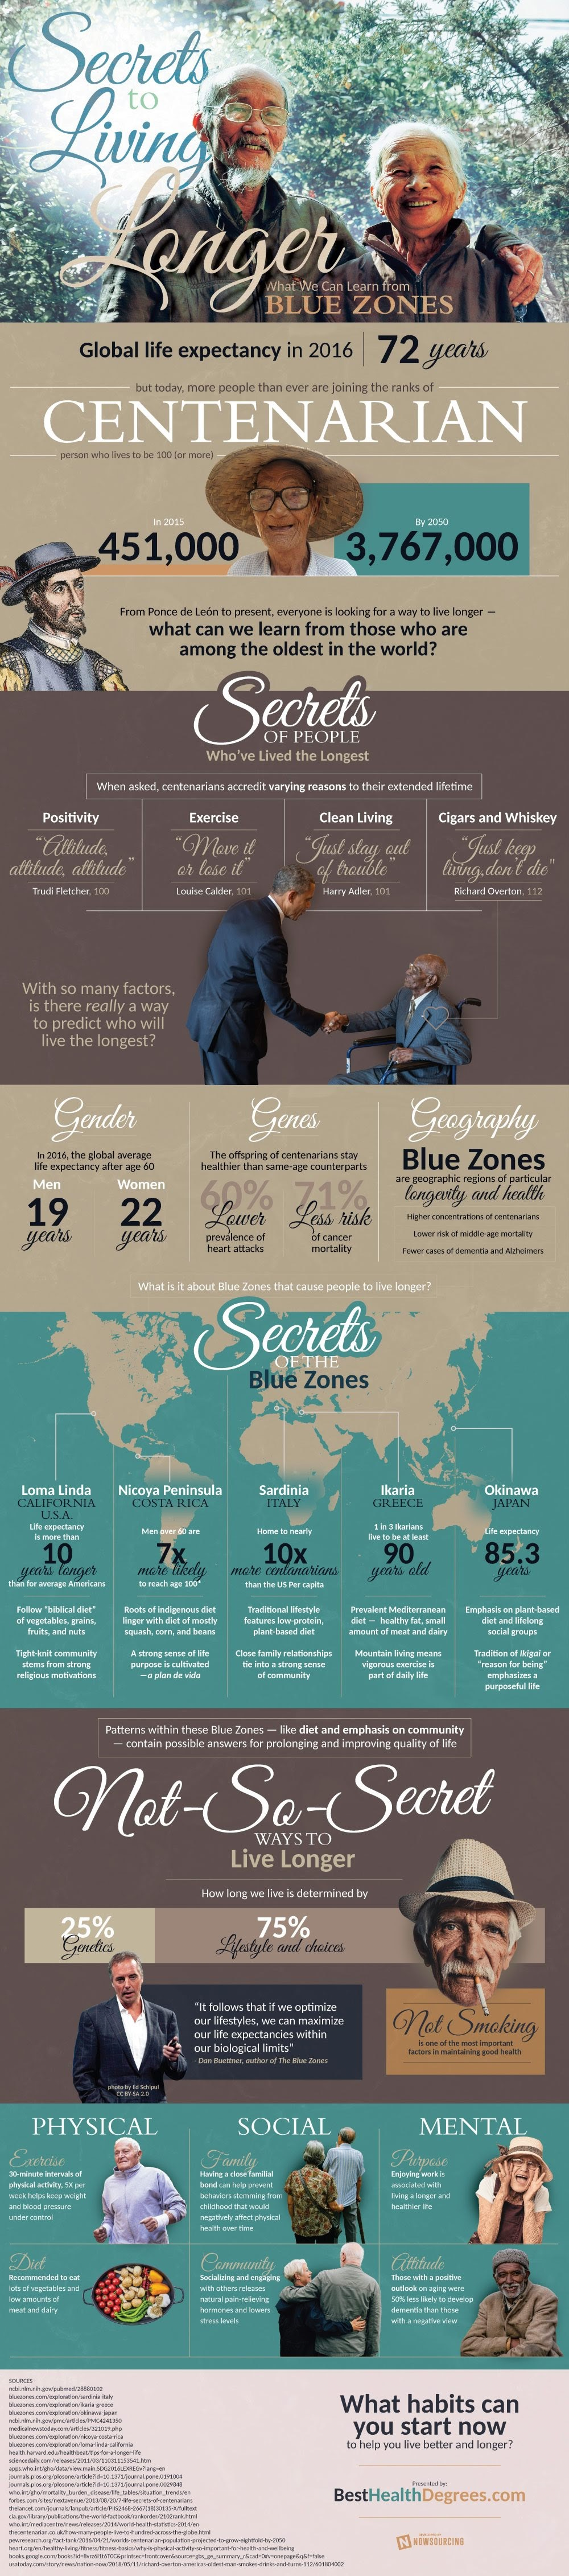 Secrets to Living Longer: What We Can Learn from Blue Zones #infographic